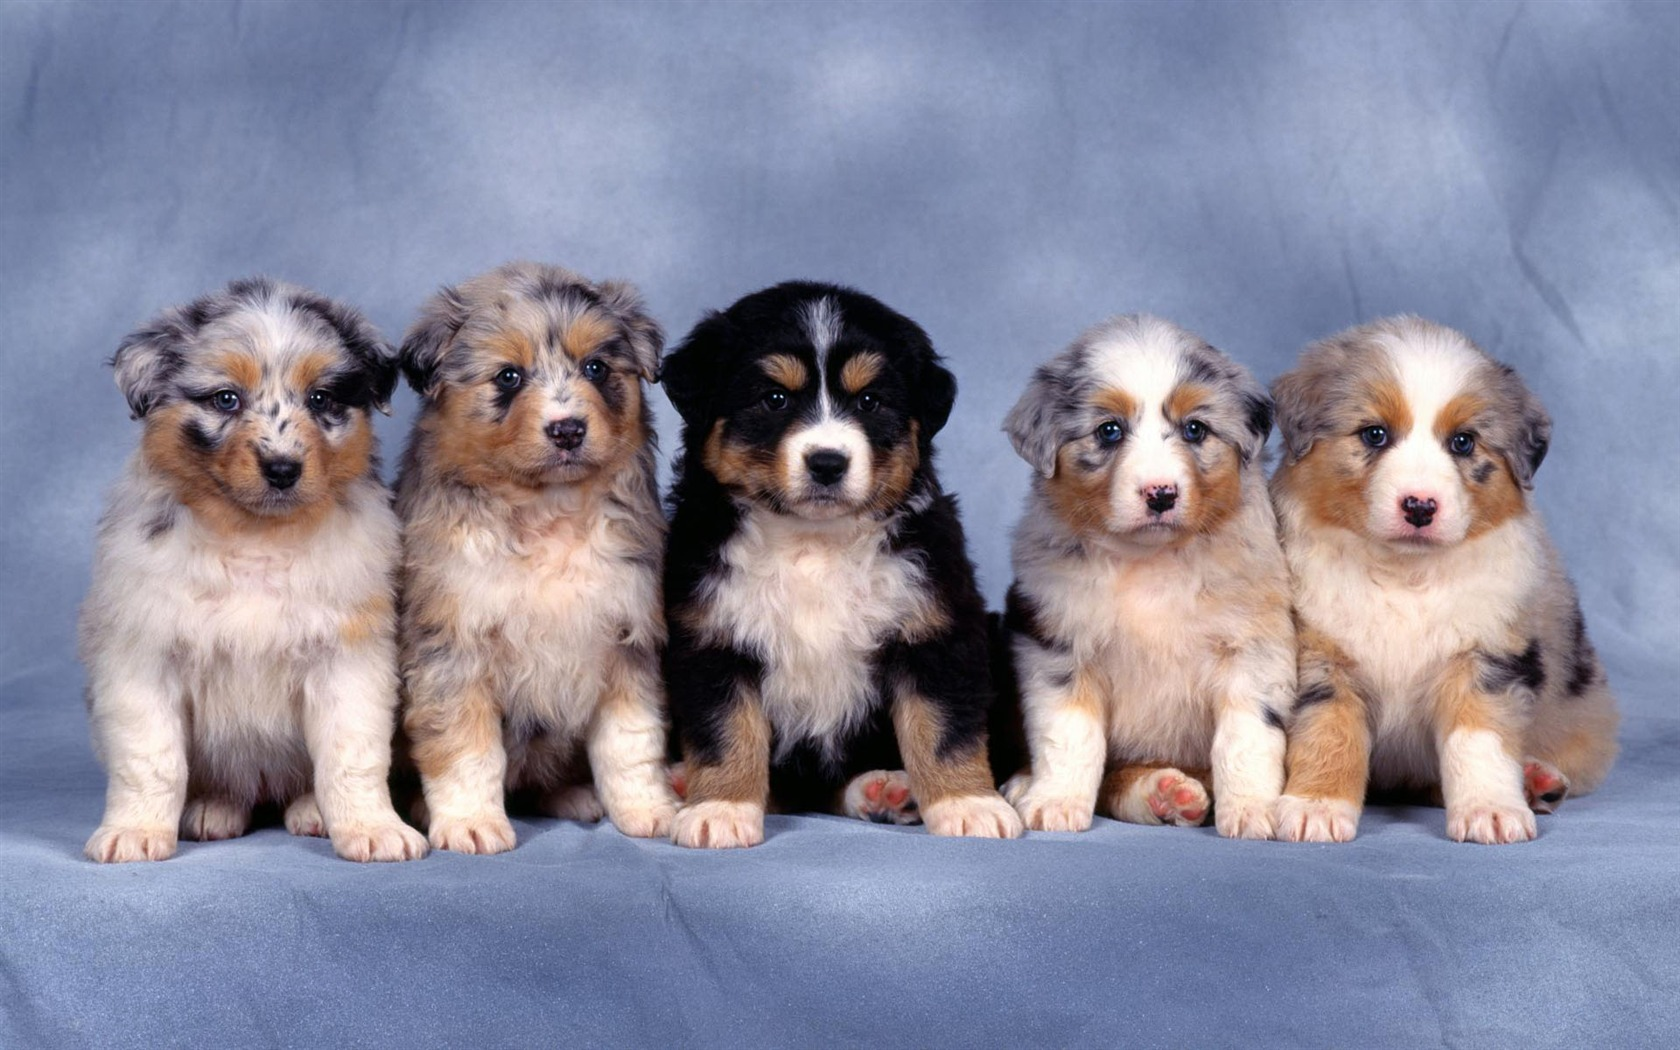 Puppy Photo HD wallpapers (1) #2 - 1680x1050